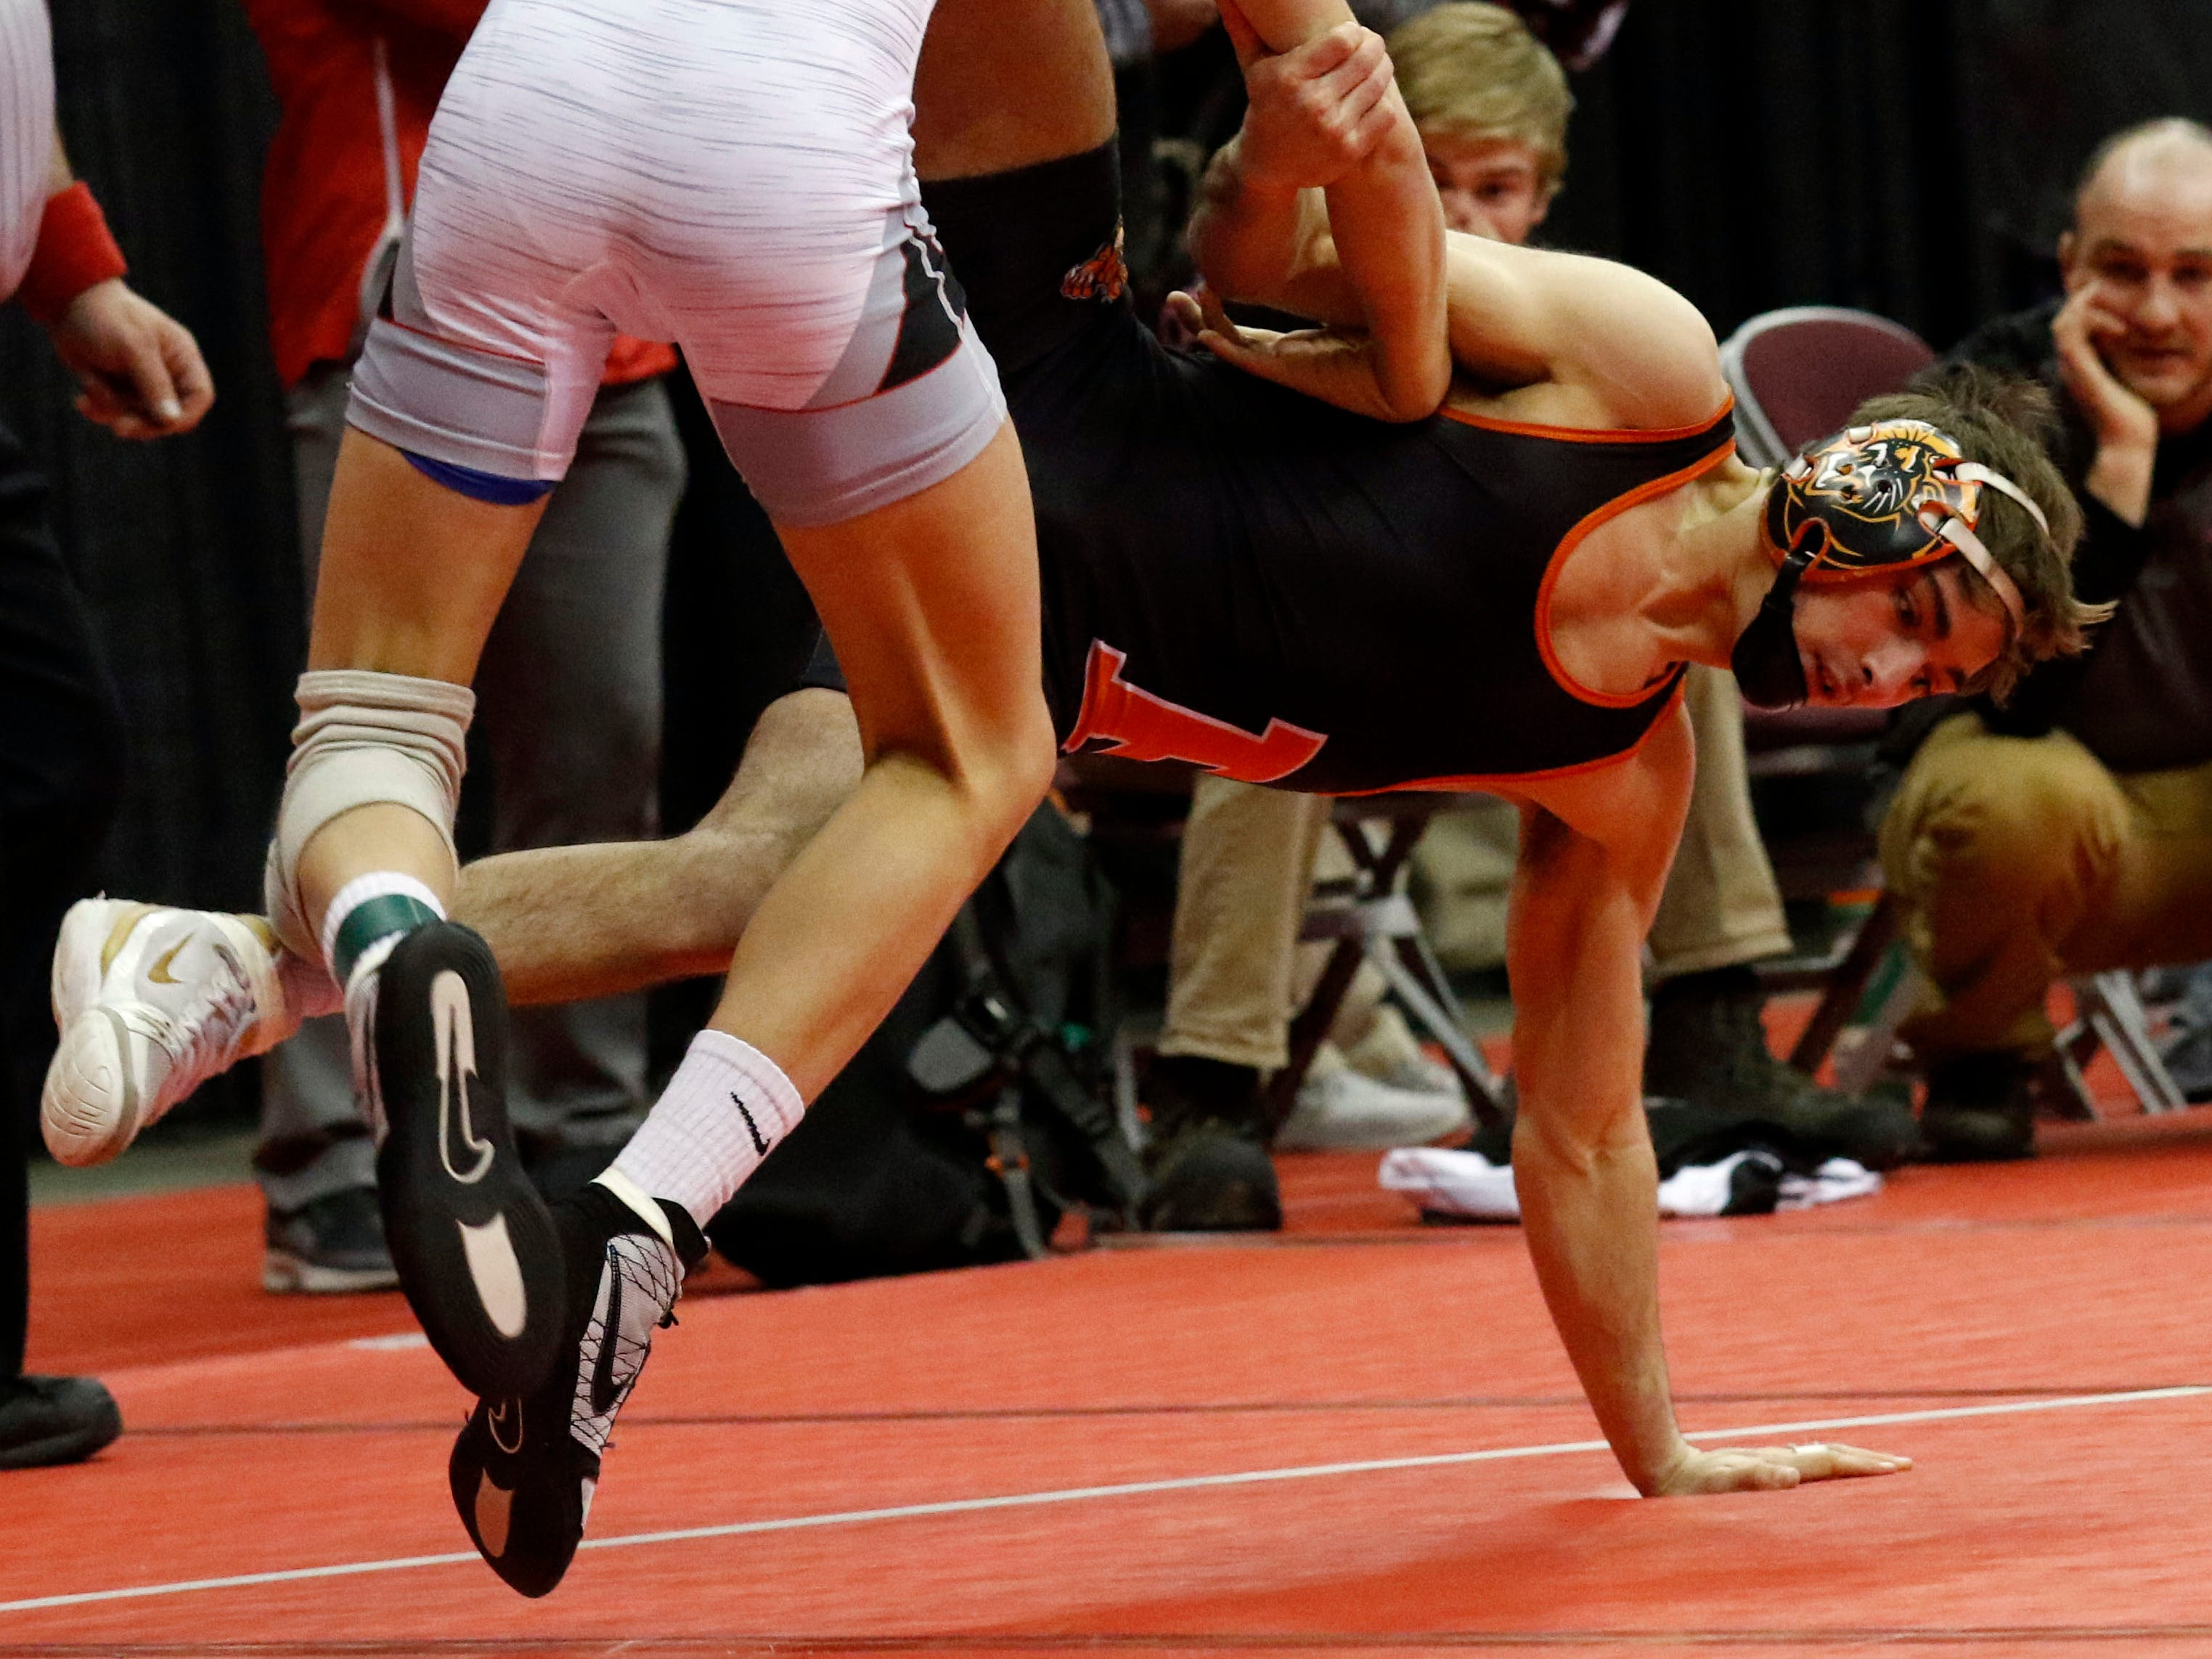 New Lexington's Blake Sheppard wrestles during the State Wrestling Tournament Thursday, March 7, 2019, at the Jerome Schottenstein Center at Ohio State University in Columbus.